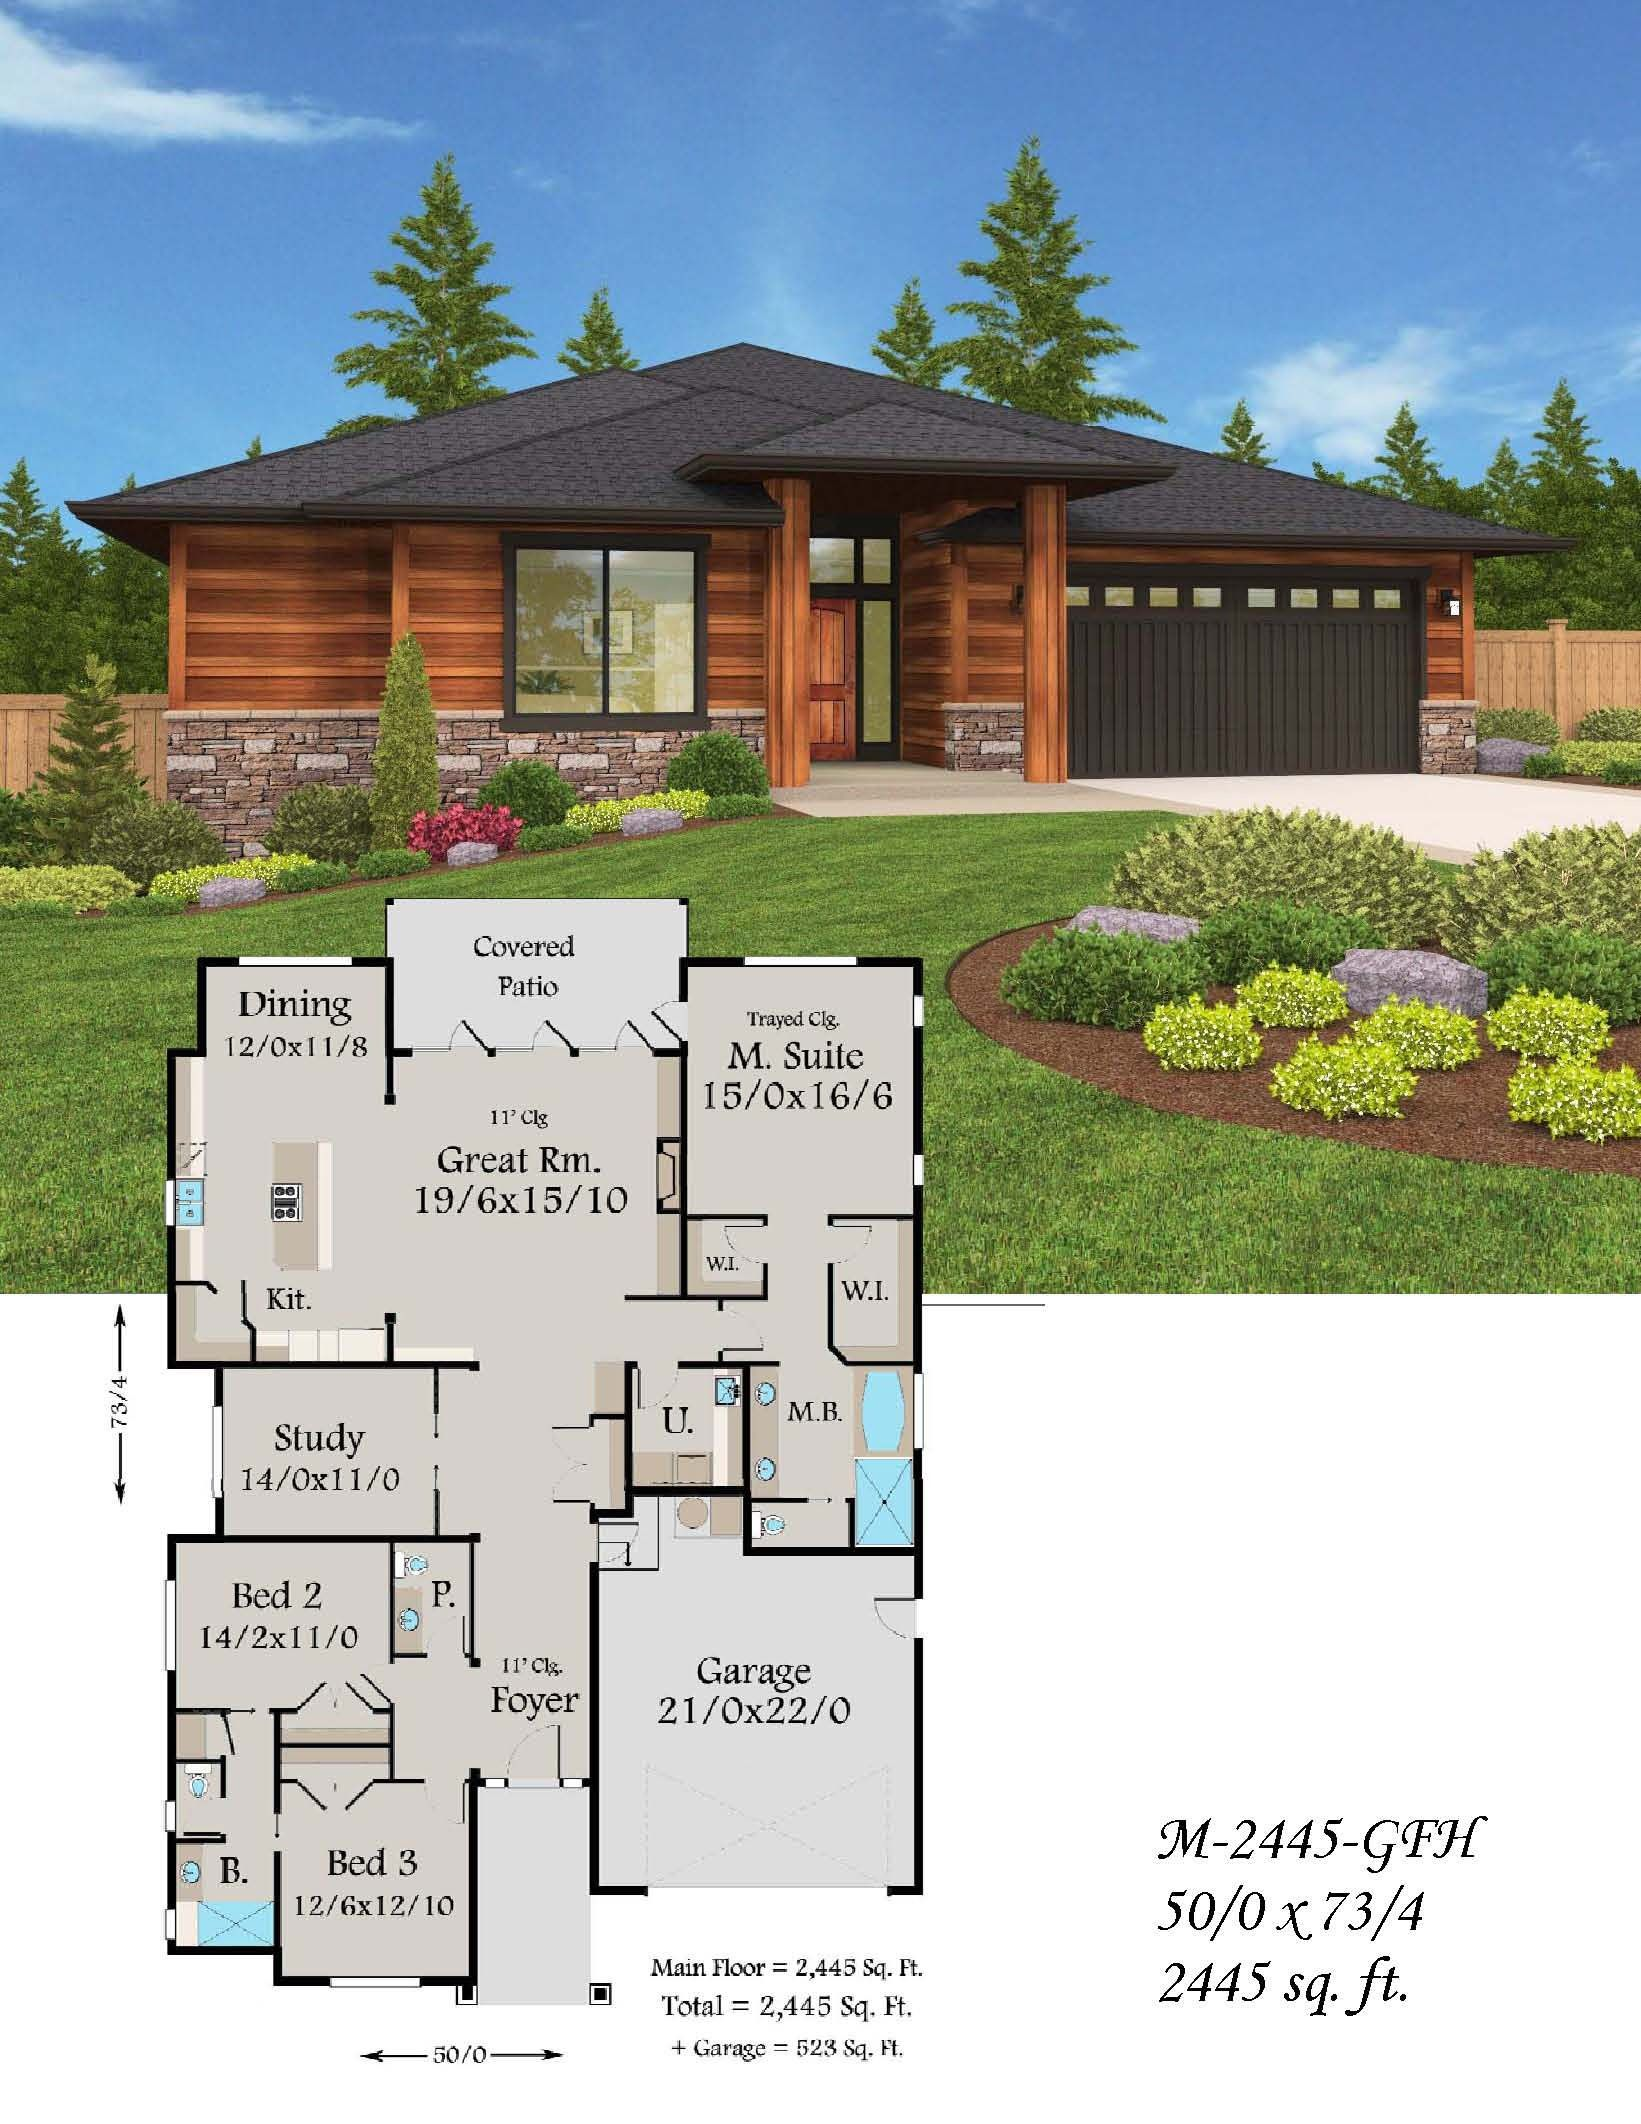 Contemporary House Plans One Story 2020 Affordable House Plans Modern House Plans House Plans One Story